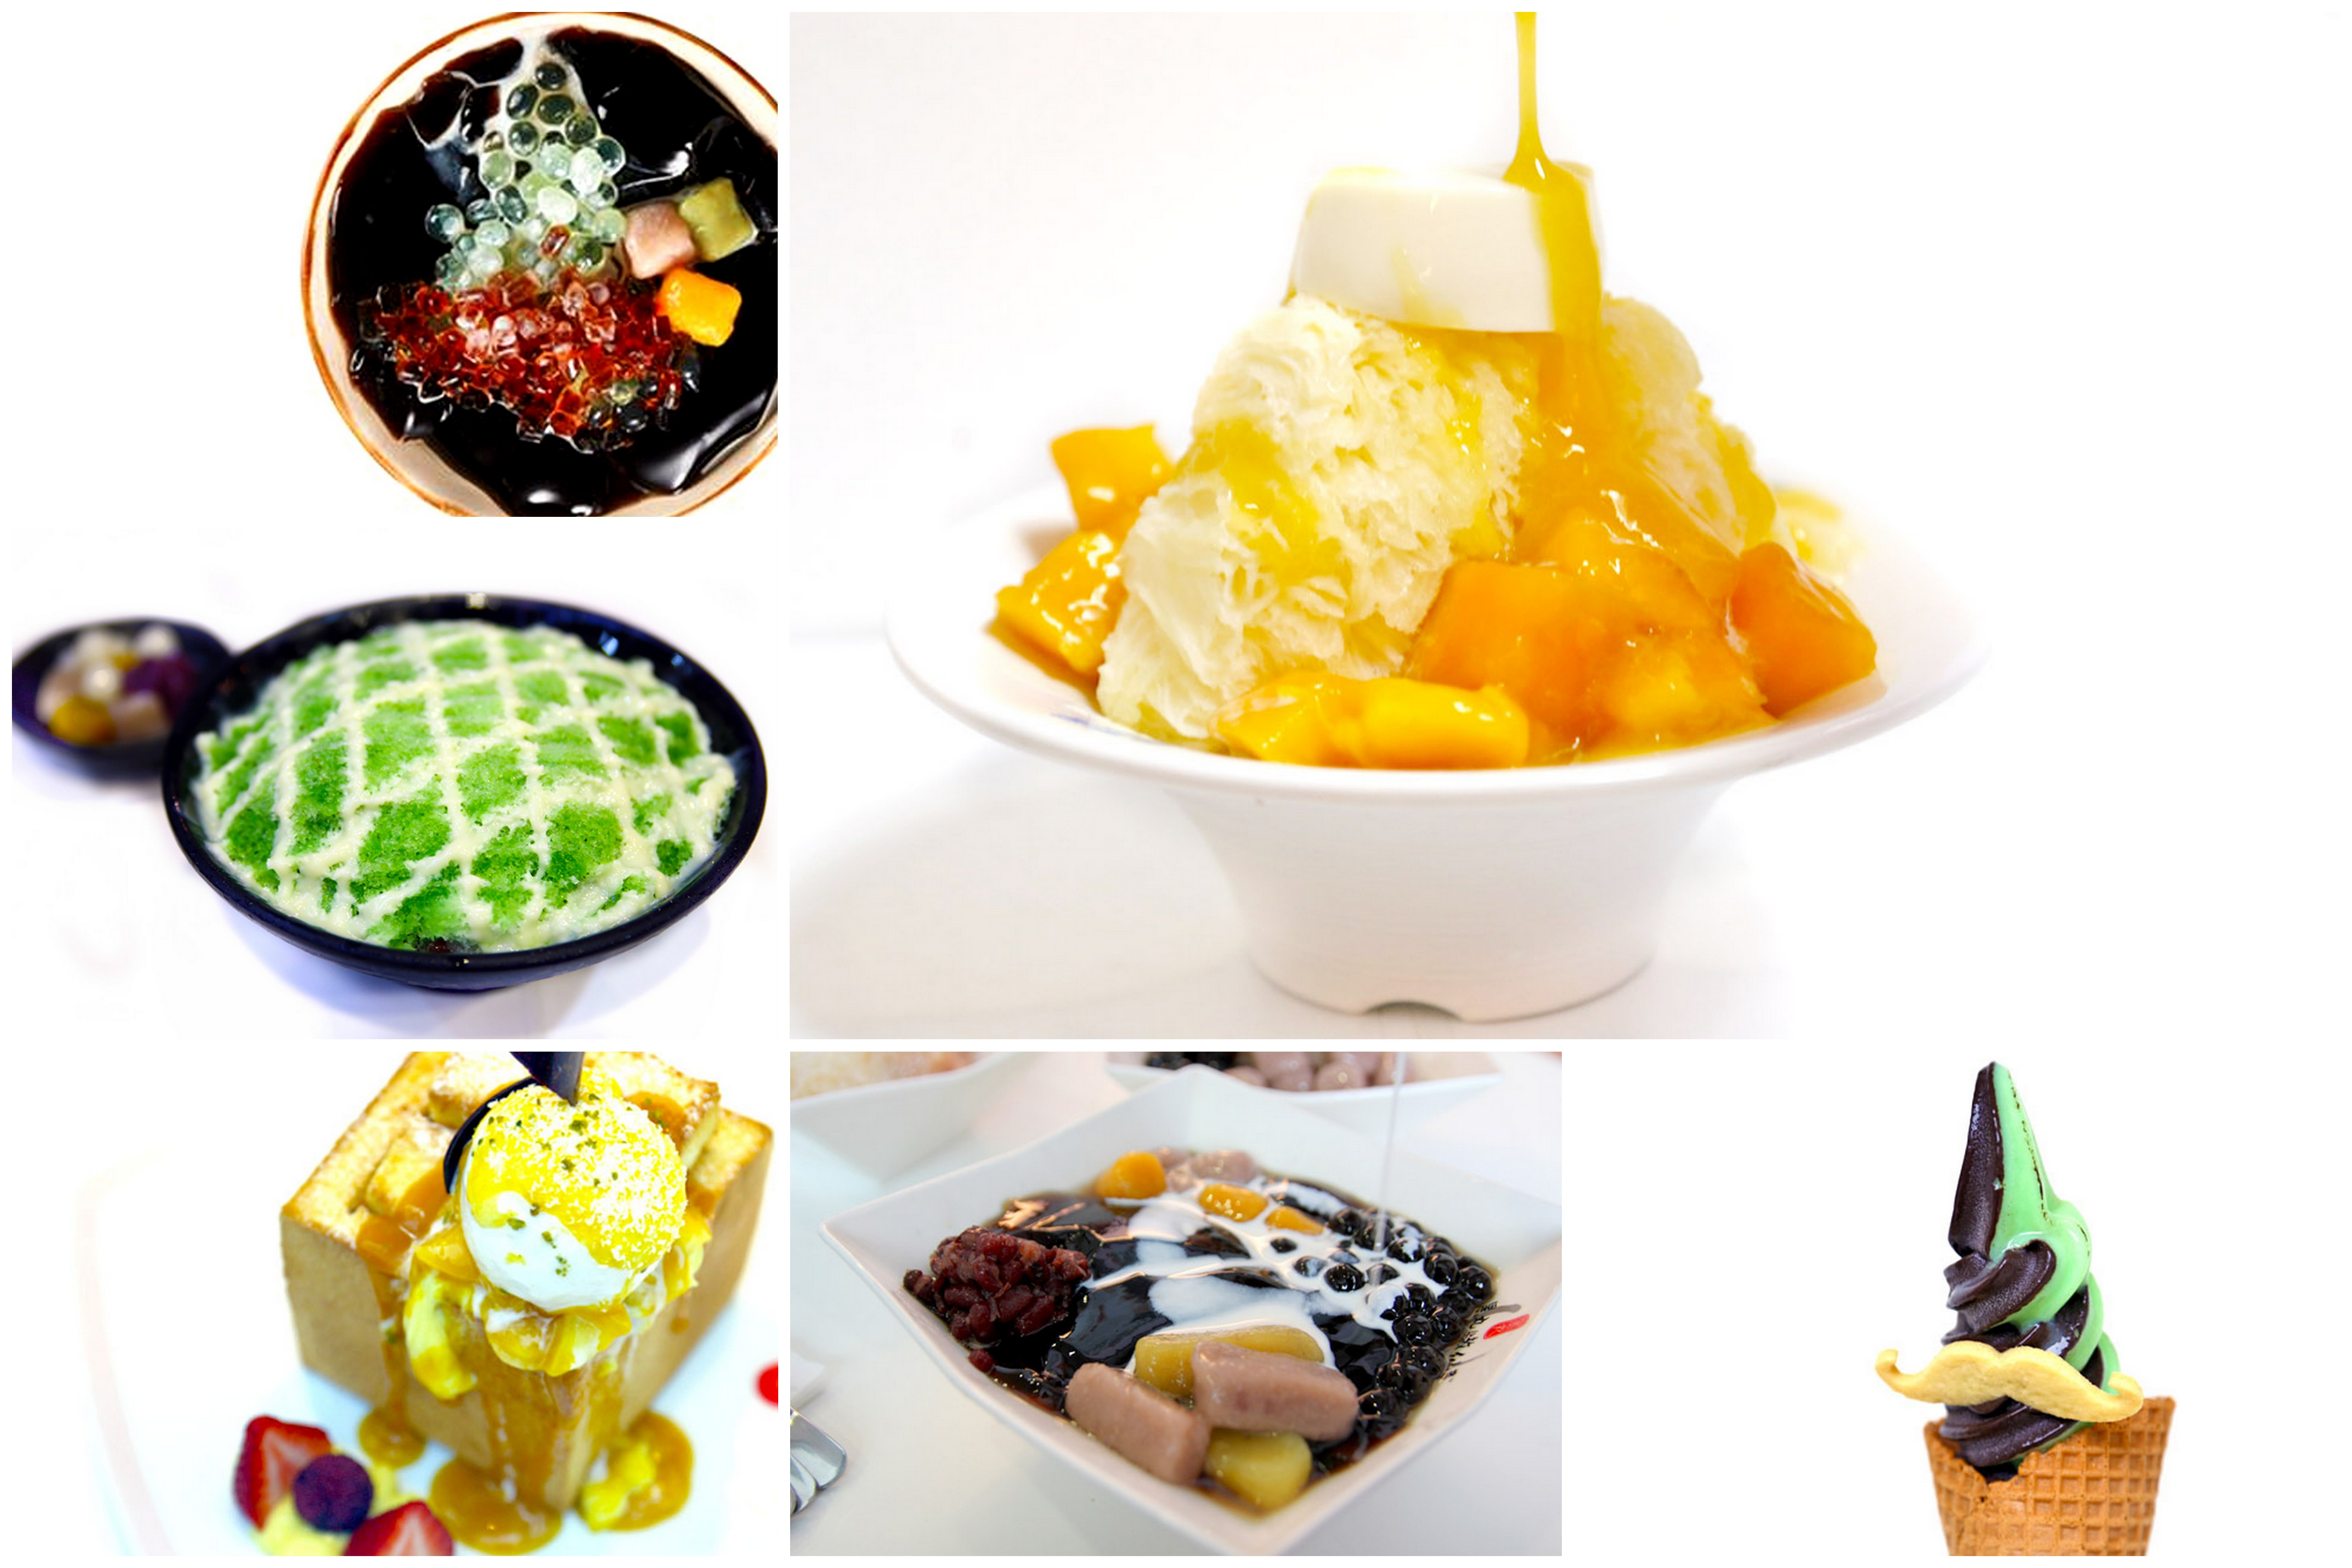 Best Taiwanese Dessert Cafes In Singapore - To Stay Cool In This Hot Weather